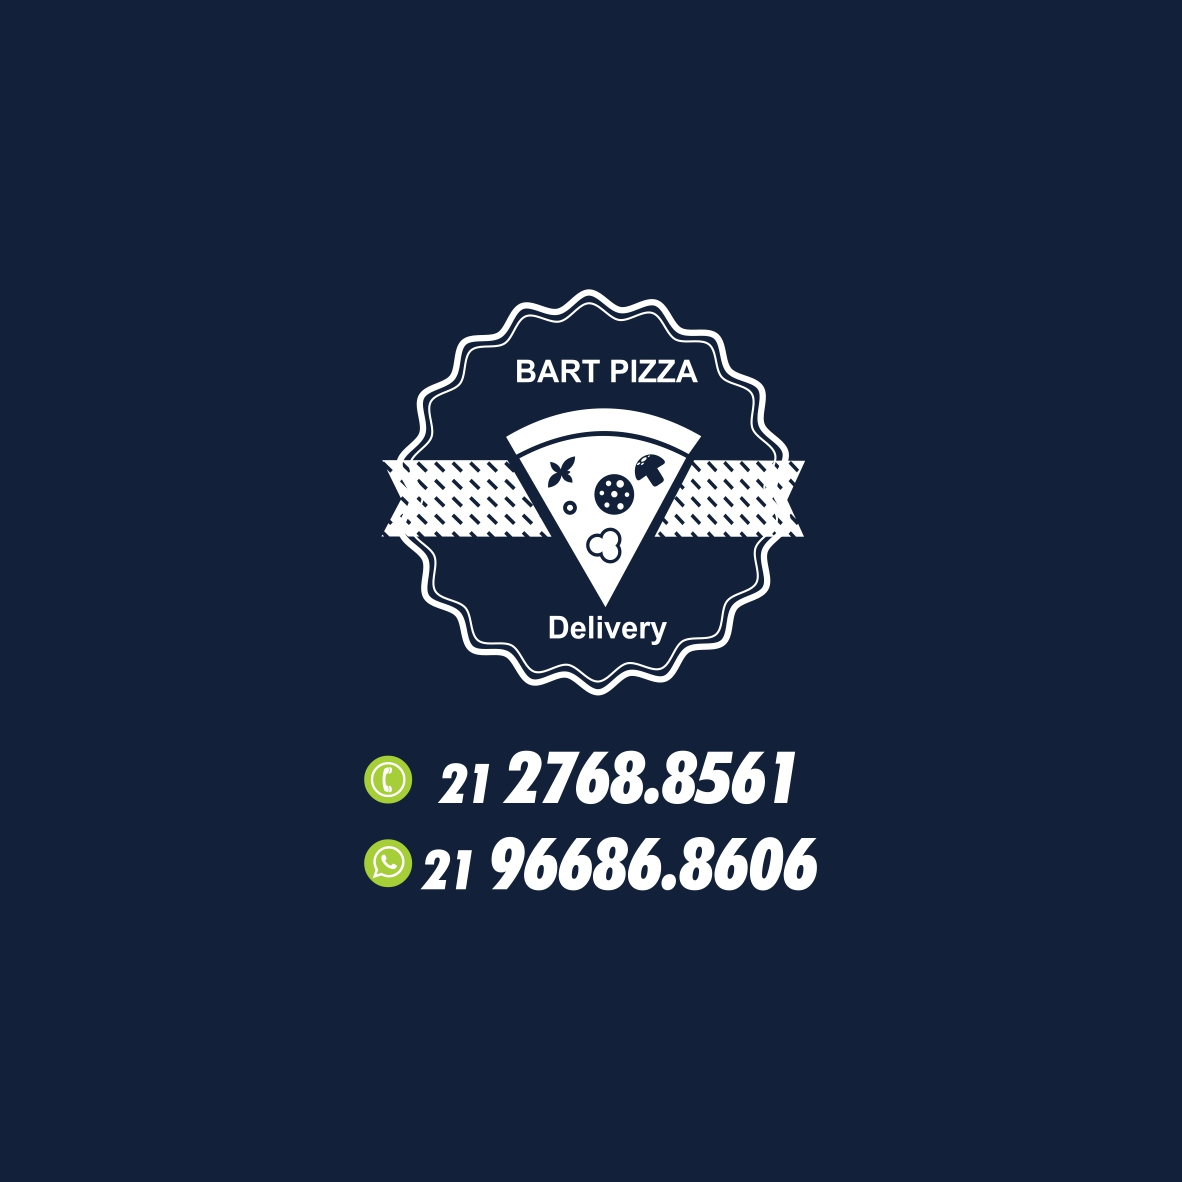 Logo-Pizzaria - BART PIZZA DELIVERY